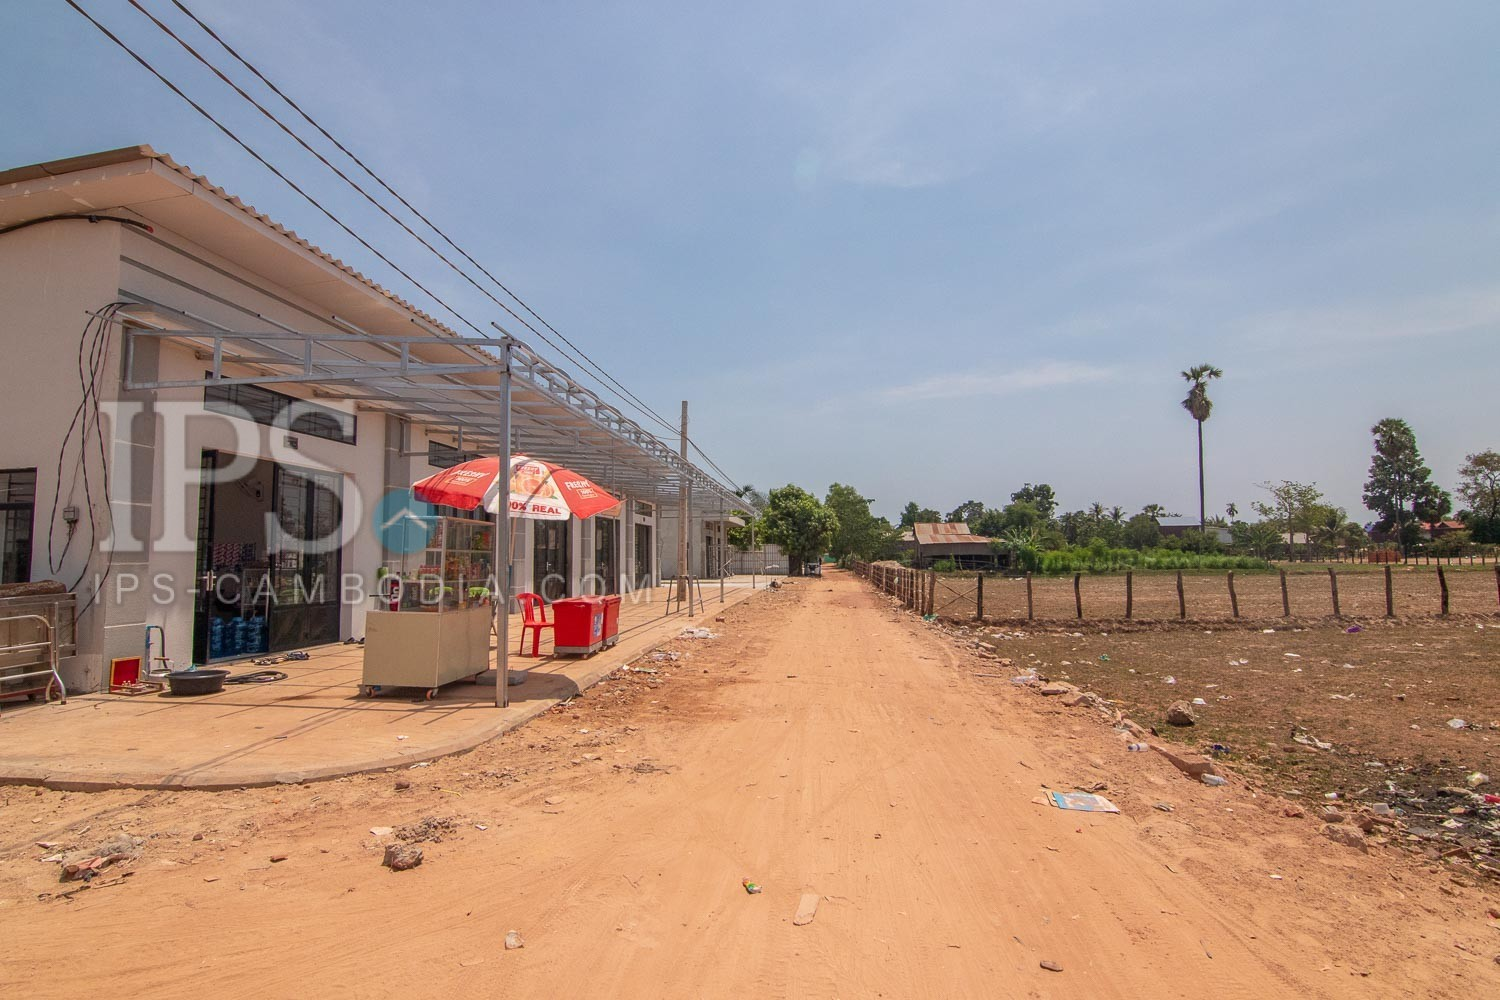 2 Bedroom House  For Sale - Bakong District, Siem Reap